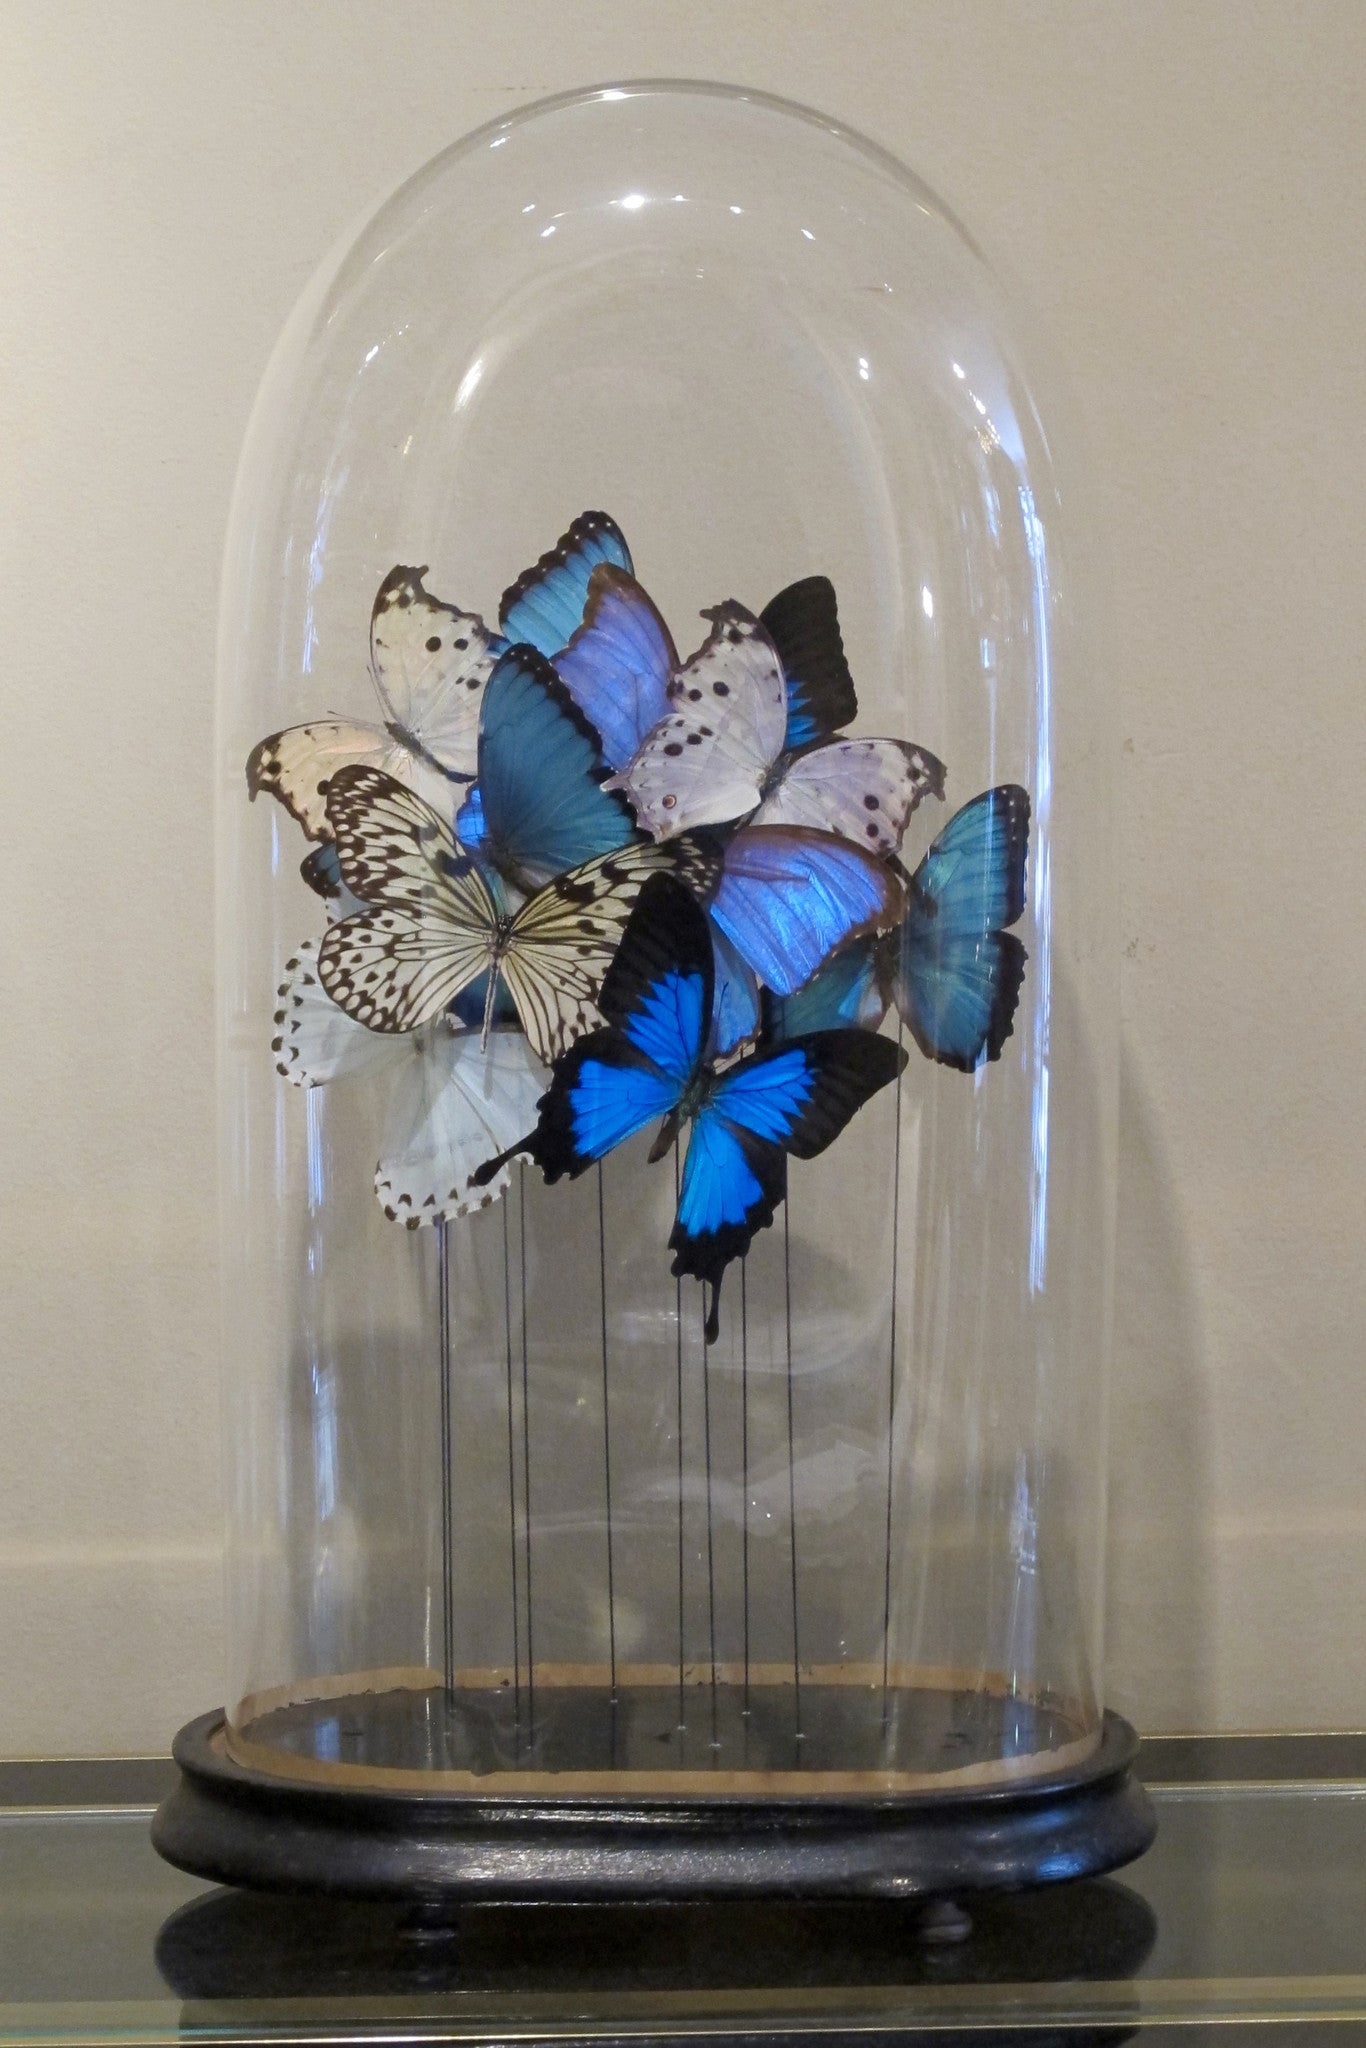 Butterflies in a Antique Bell Jar